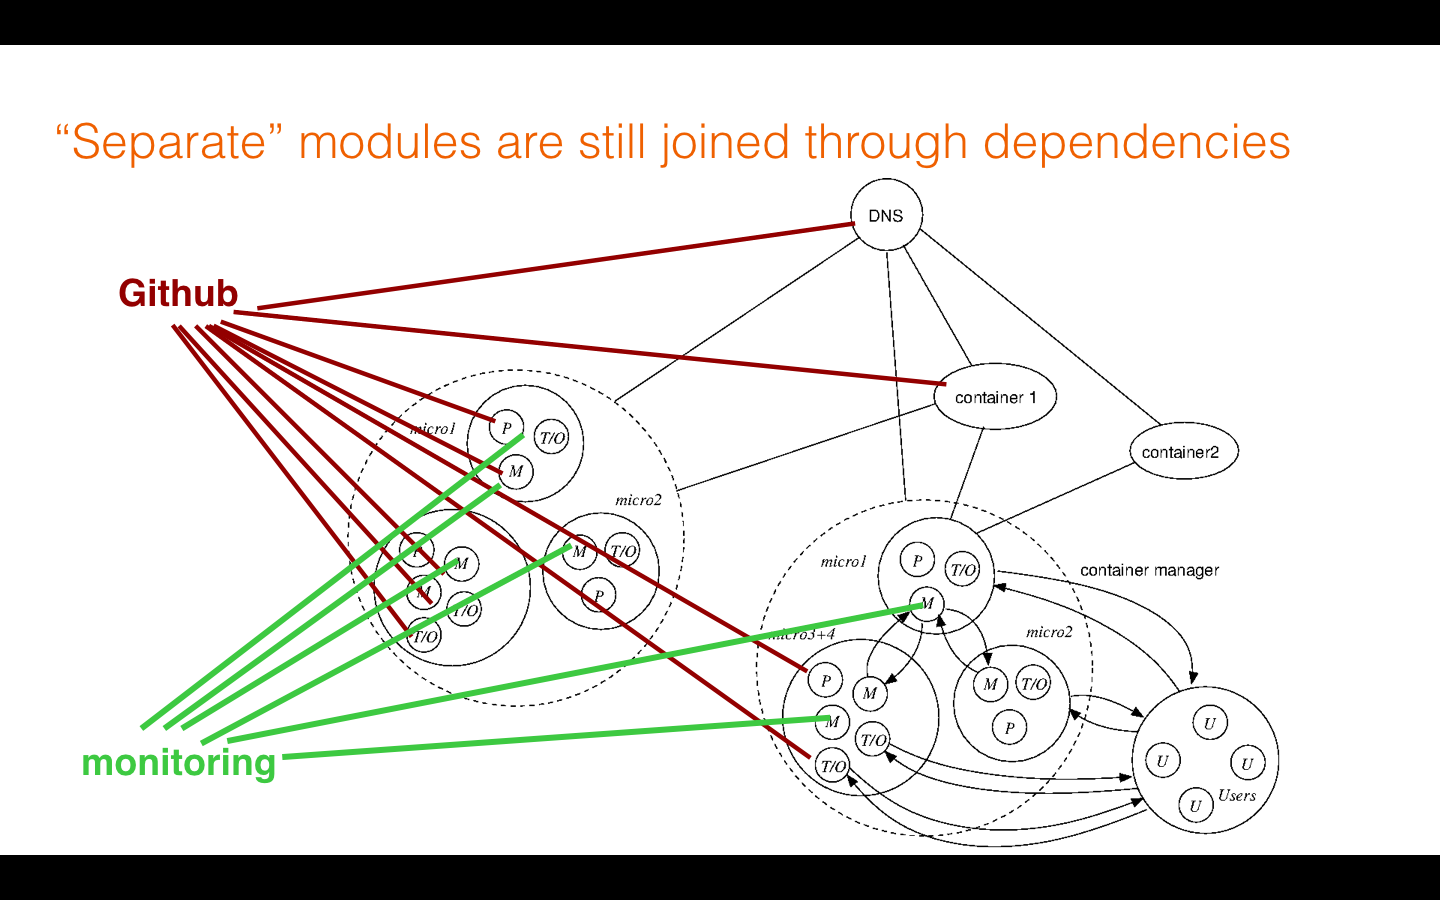 Mark Burgess Microservices The Future Of Society And All That Reflux Still Diagram This Final Picture Shows We Should Not Be Too Trusting These Modules As Strict Failure Domains Because There Can Propagation Faults